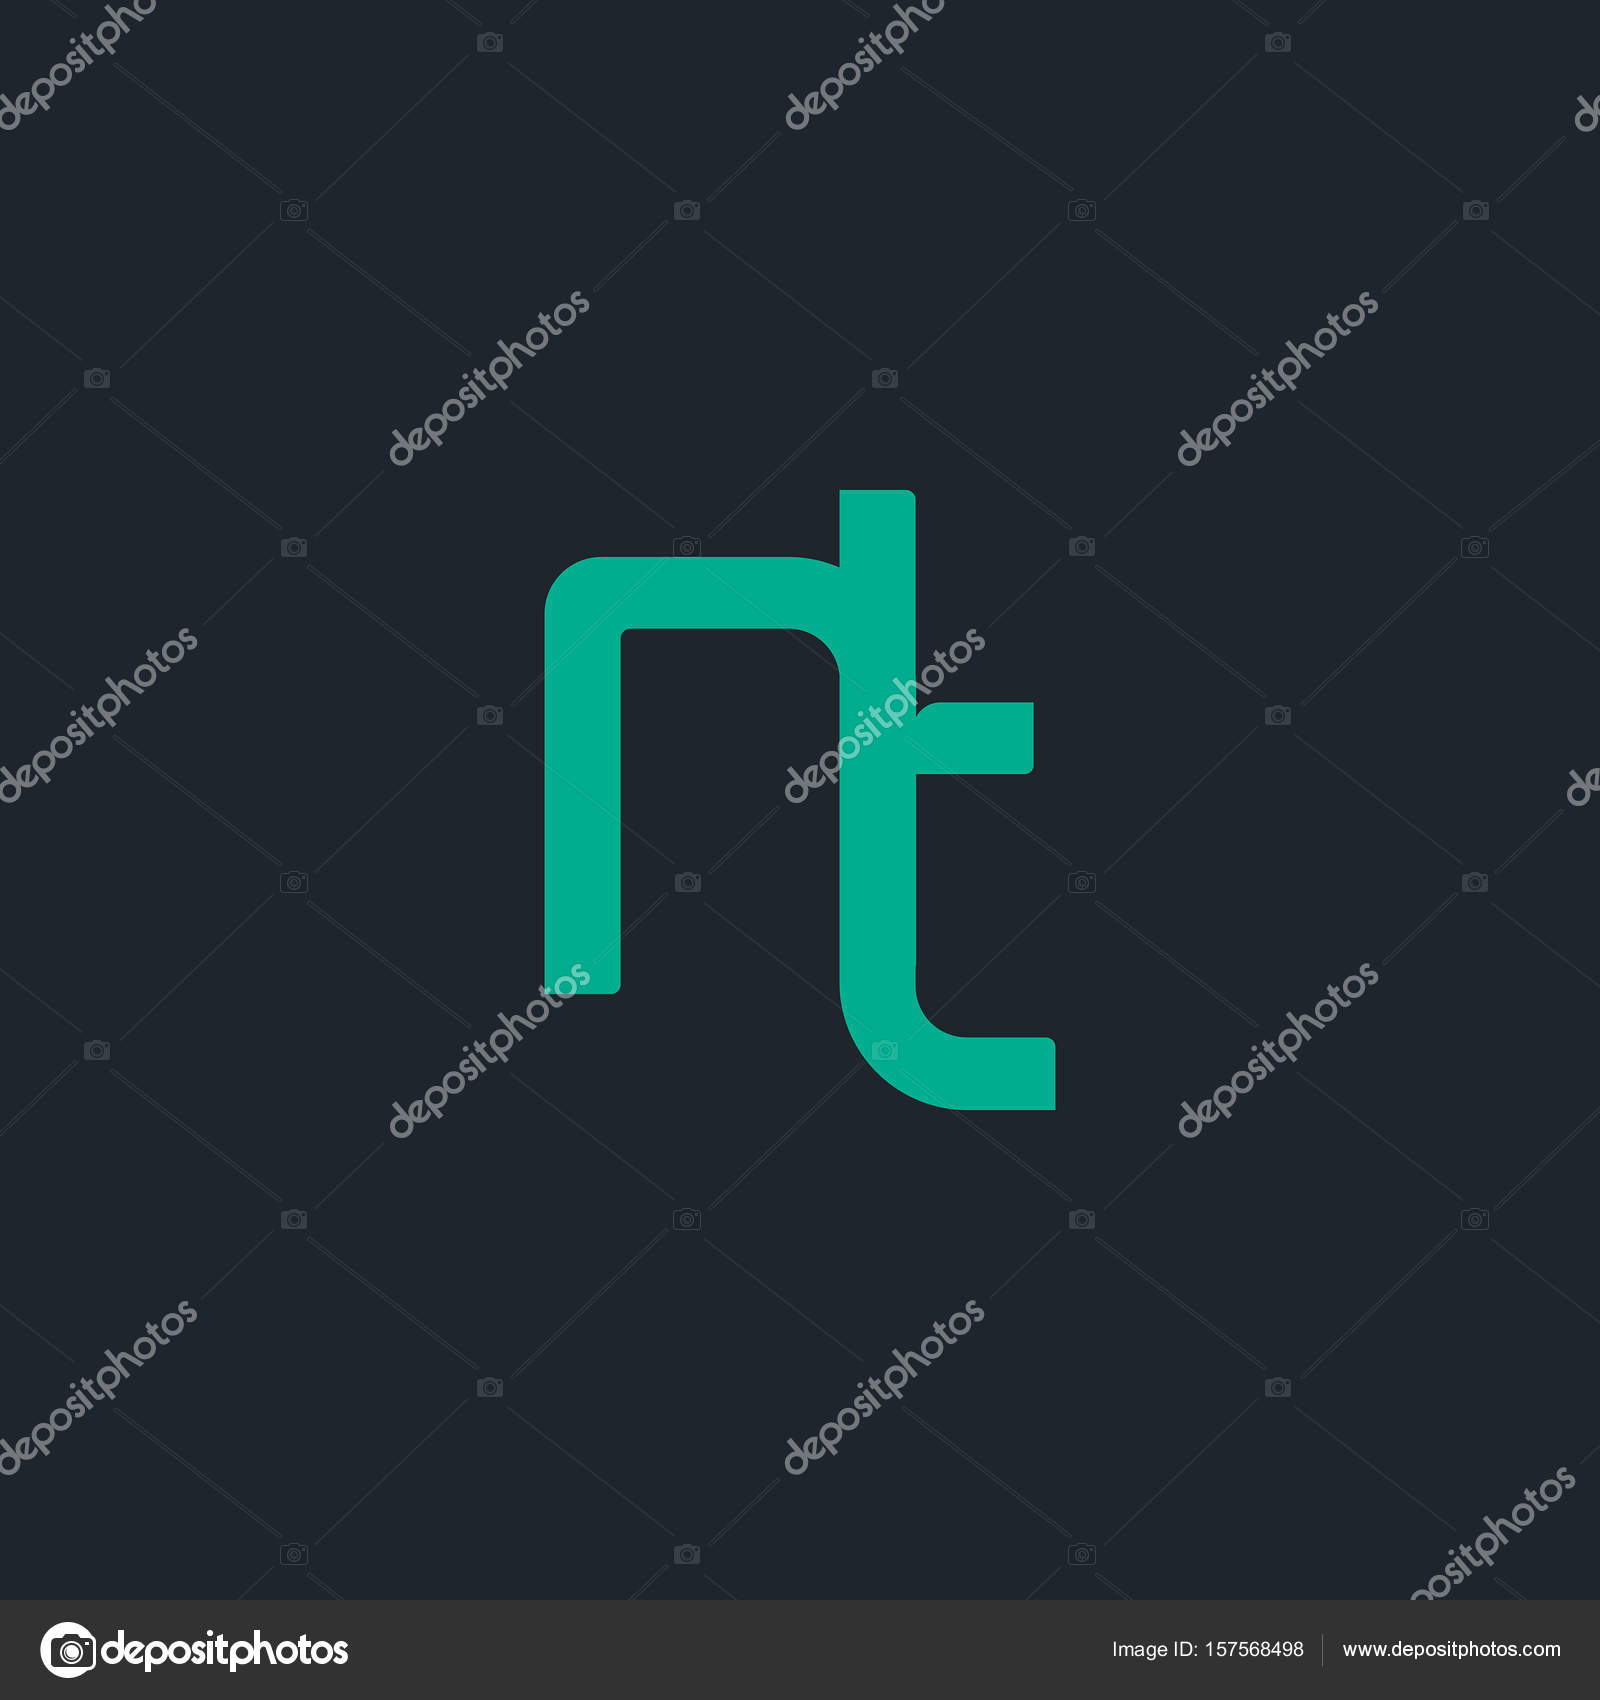 Design Of Joint Letters Nt Stock Vector Deepzdzyn 157568498